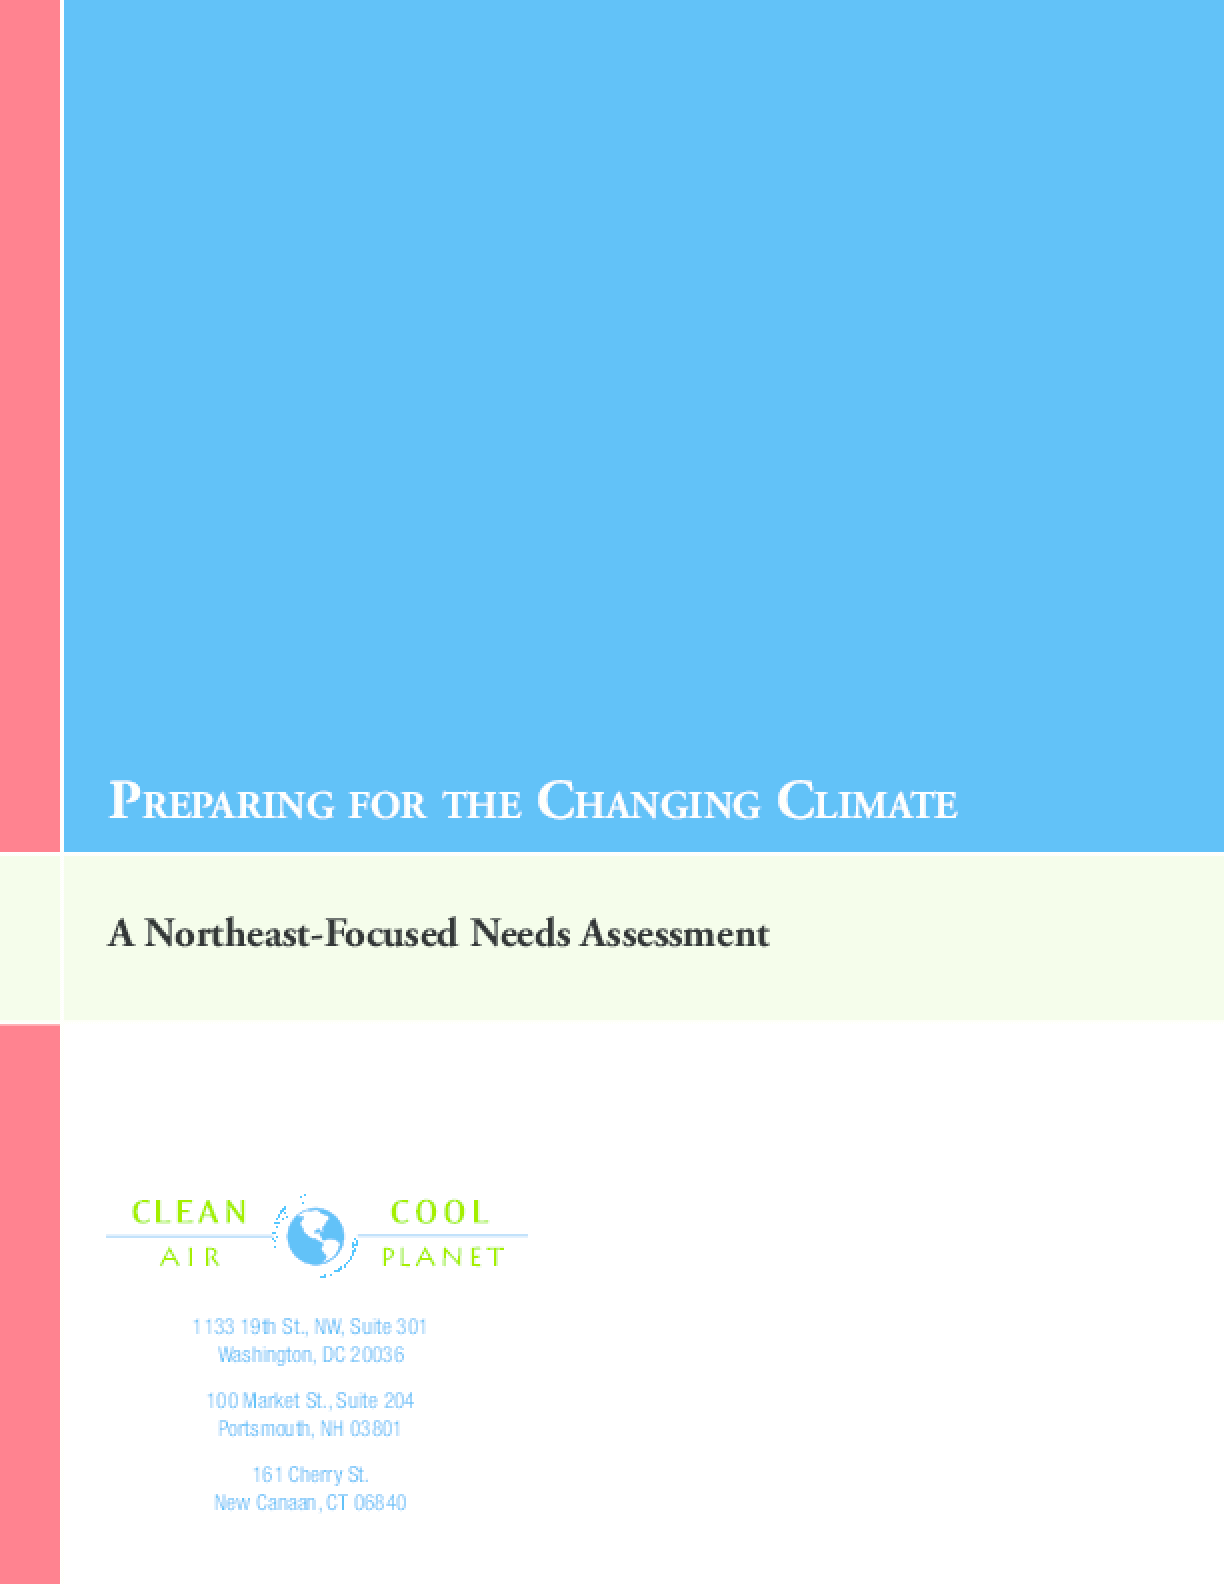 Preparing for the Changing Climate: A Northeast-Focused Needs Assessment